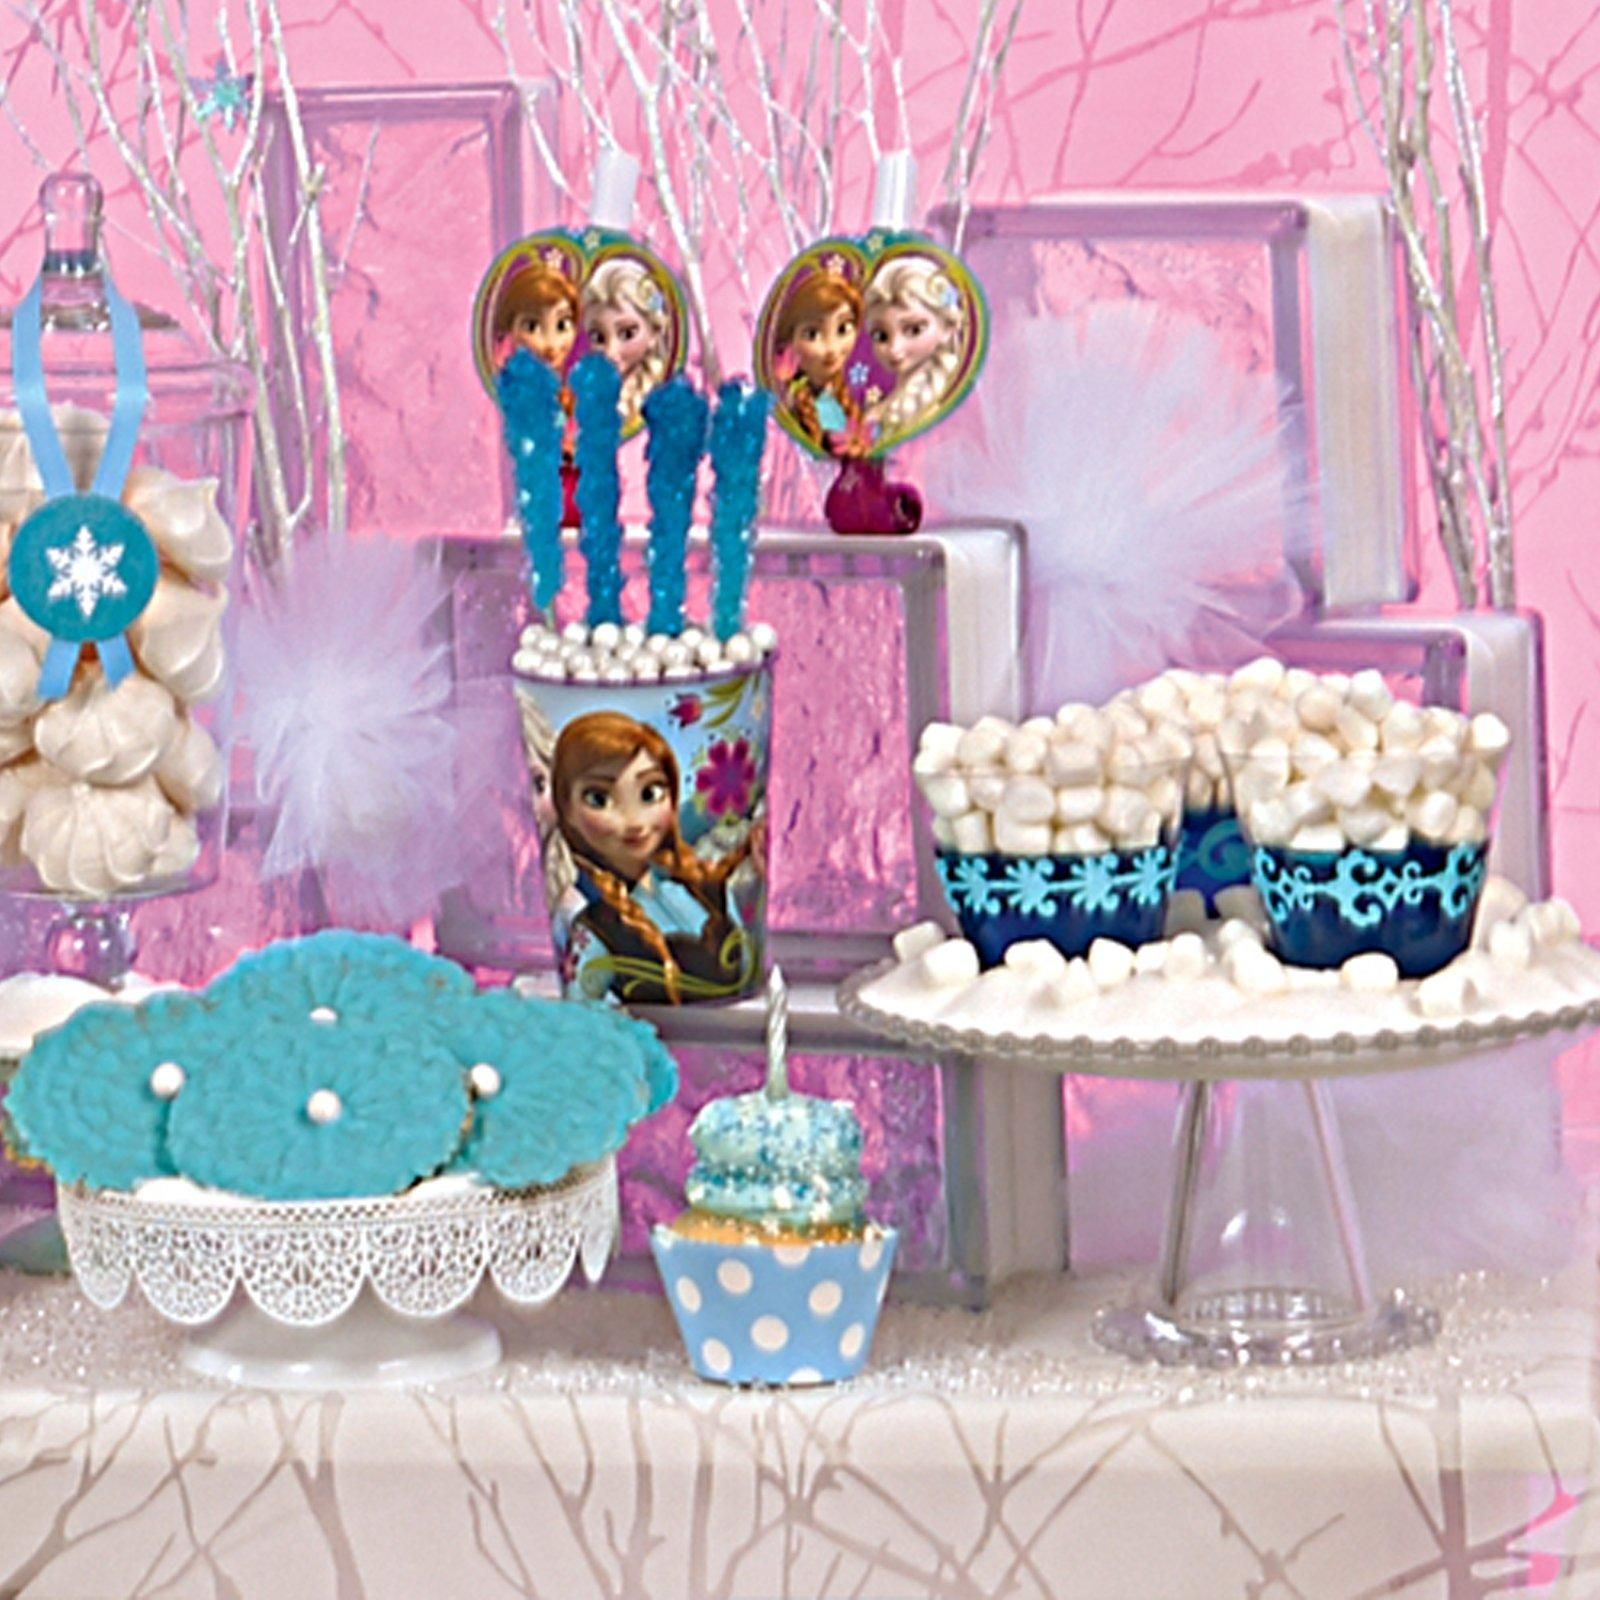 Disney Frozen Party in a Box For 8-Ultimate